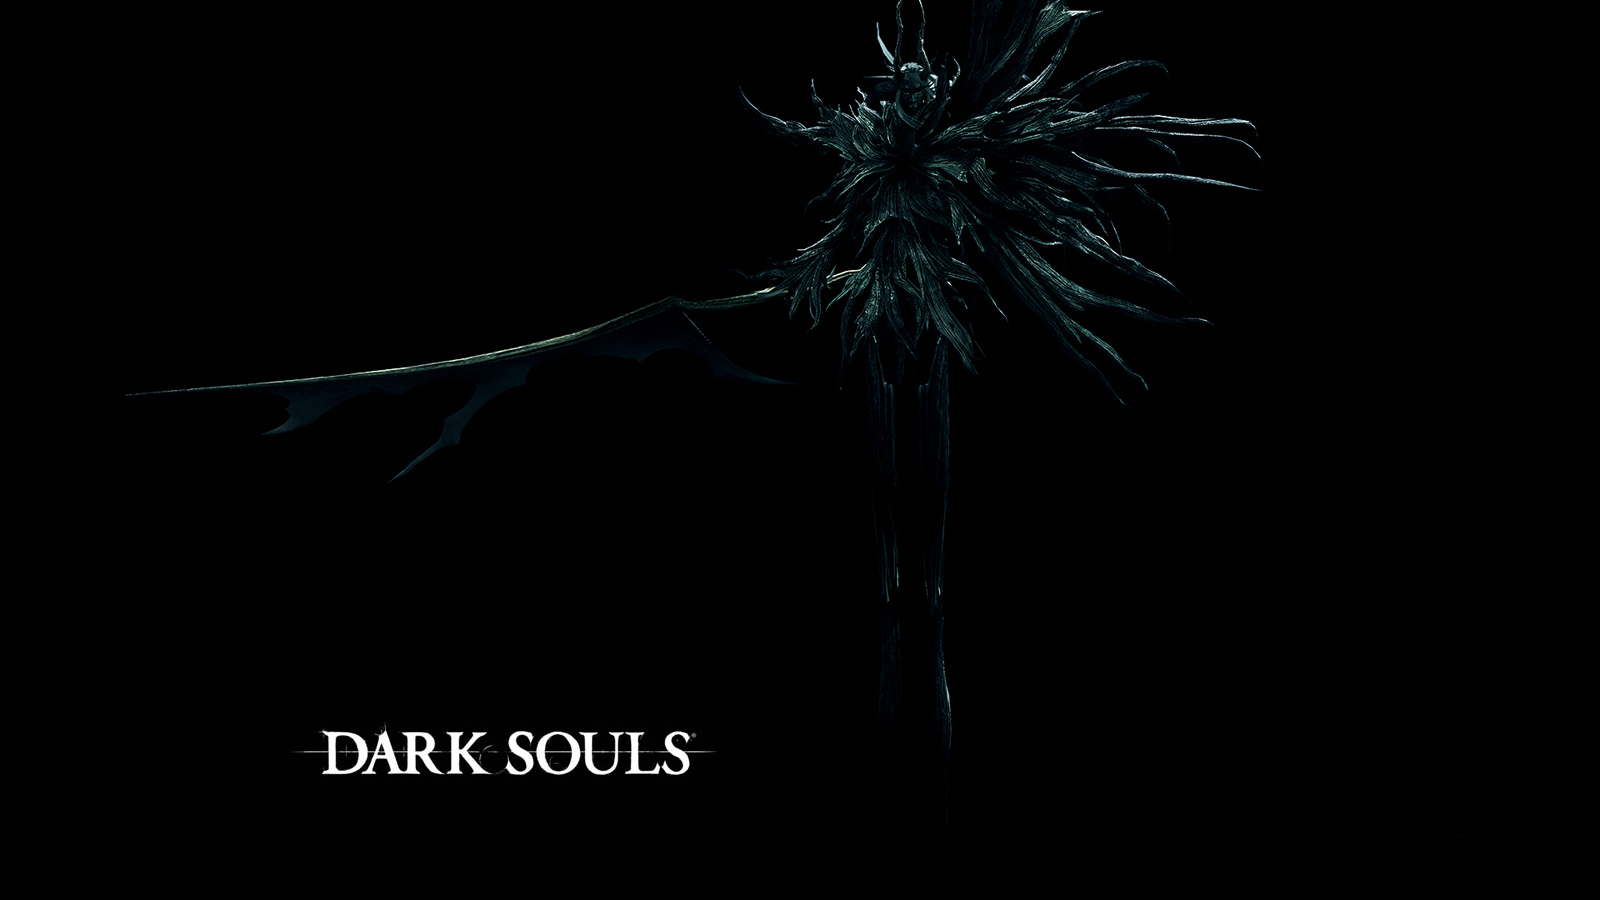 Dark Souls Wallpaper and Background Image | 1600x900 | ID ...